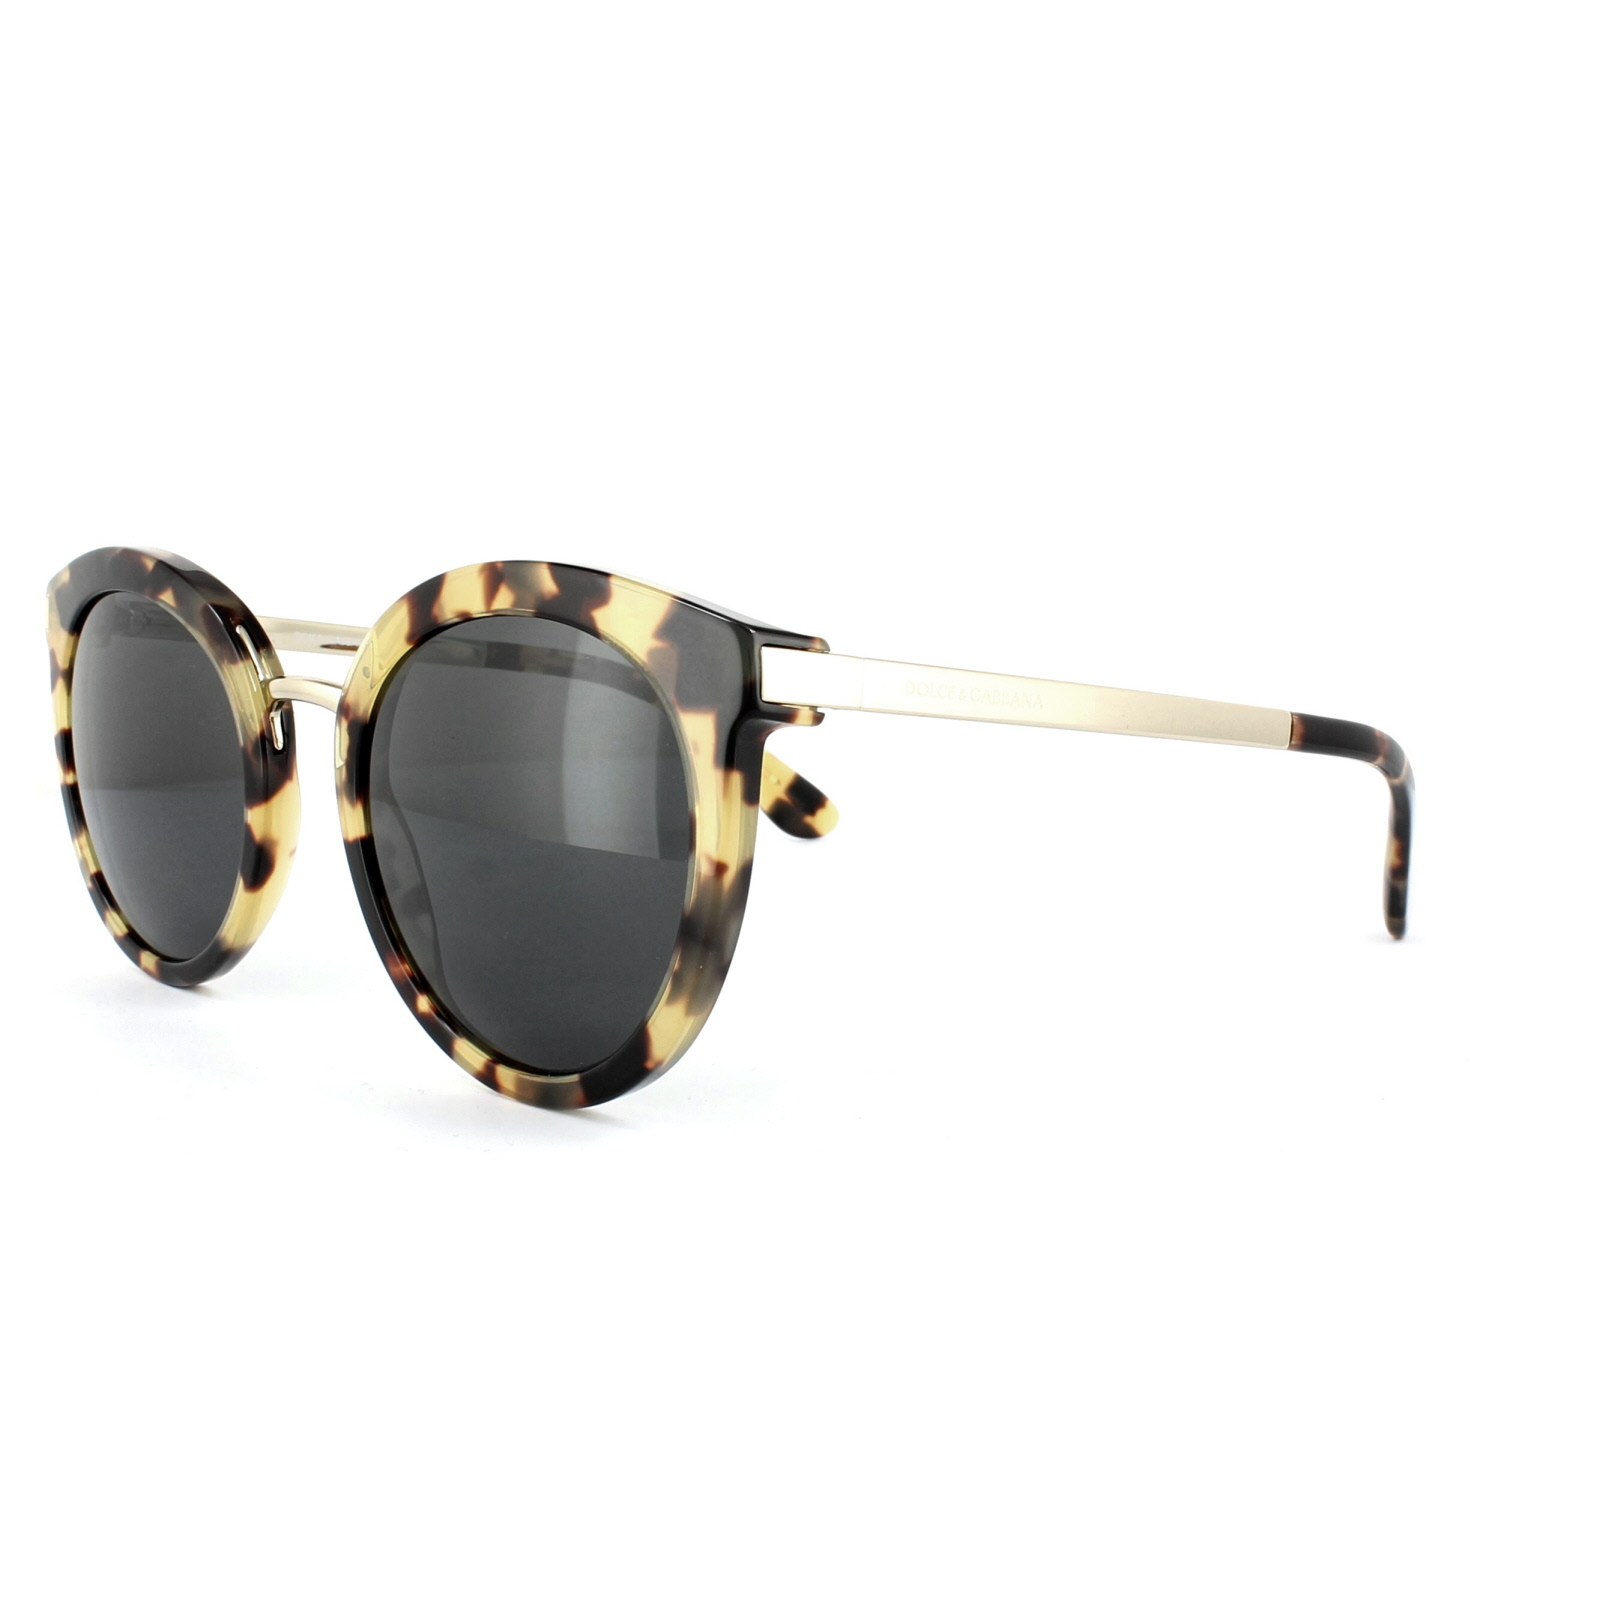 f1220dd4270f Sentinel Dolce   Gabbana Sunglasses 4268 512 87 Light Havana Grey